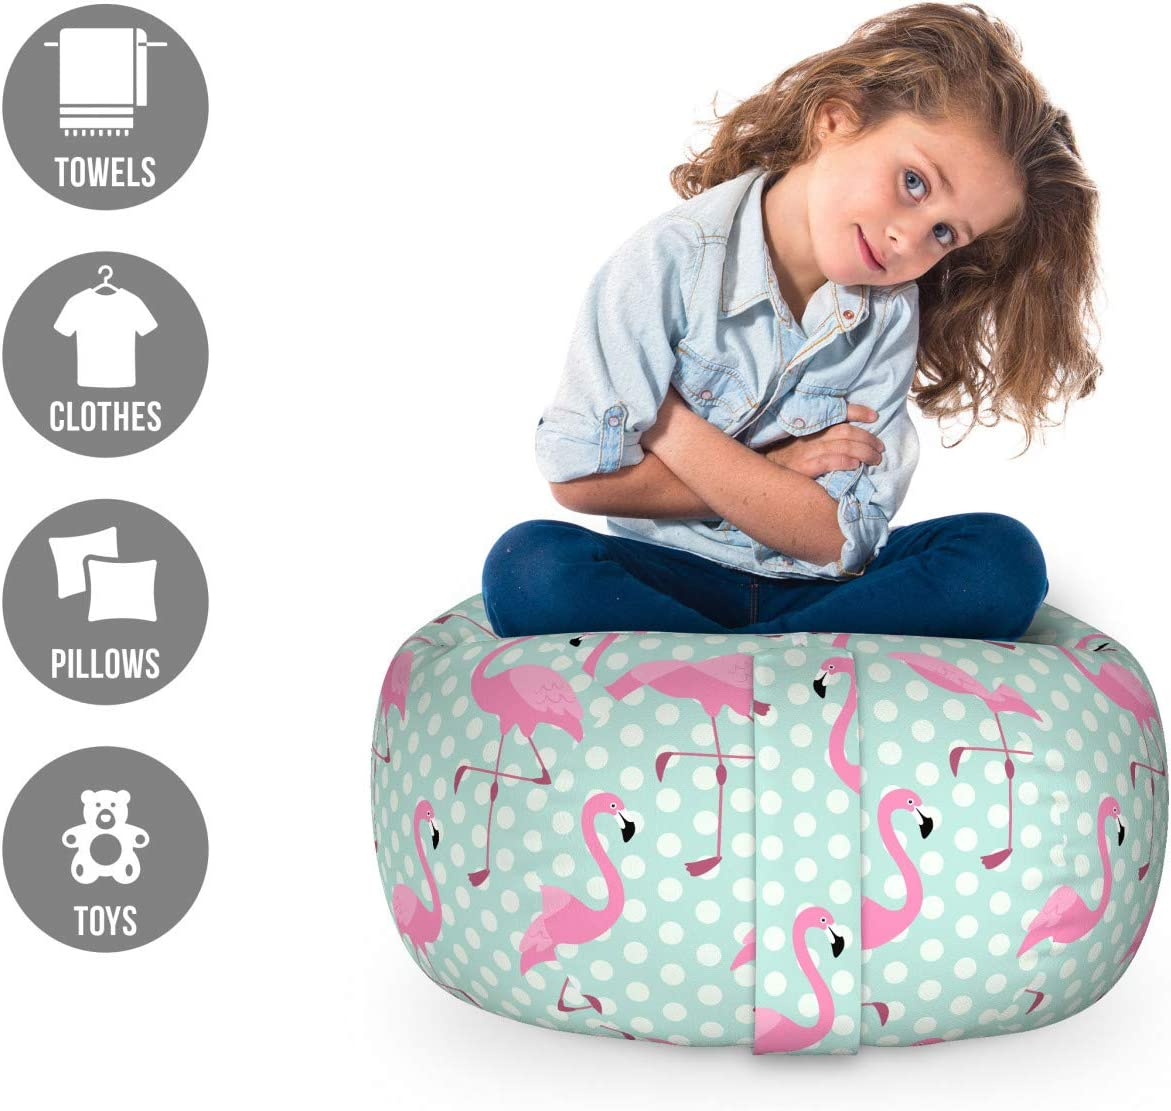 Birds of Hawaii Exotic Animals on Polka Dot Backdrop Ambesonne Pink Flamingo Storage Toy Bag Chair Large Size Mint Green Pale Pink Stuffed Animal Organizer Washable Bag for Kids